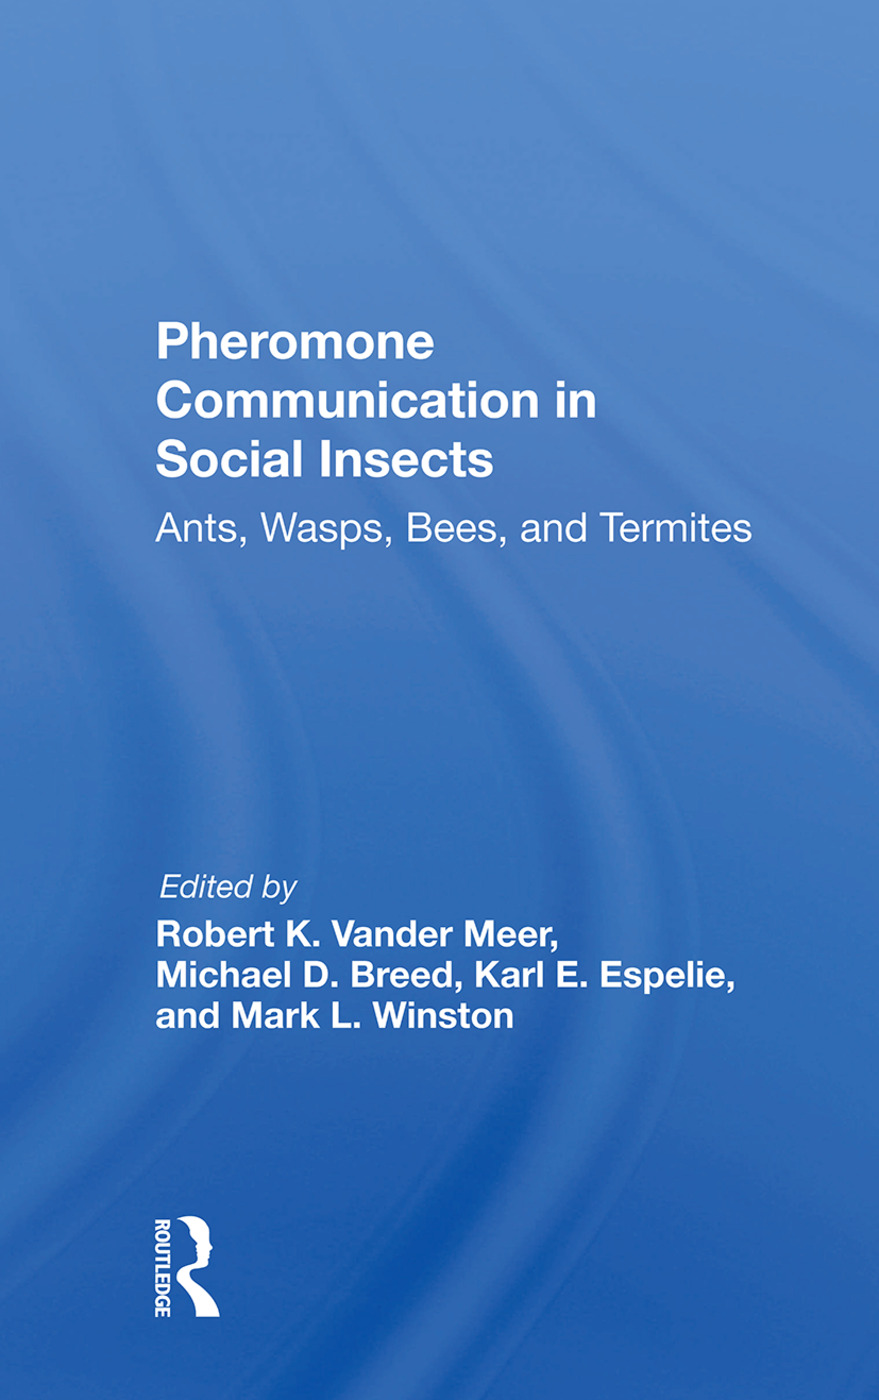 Pheromone Communication In Social Insects: Ants, Wasps, Bees, And Termites, 1st Edition (Hardback) book cover